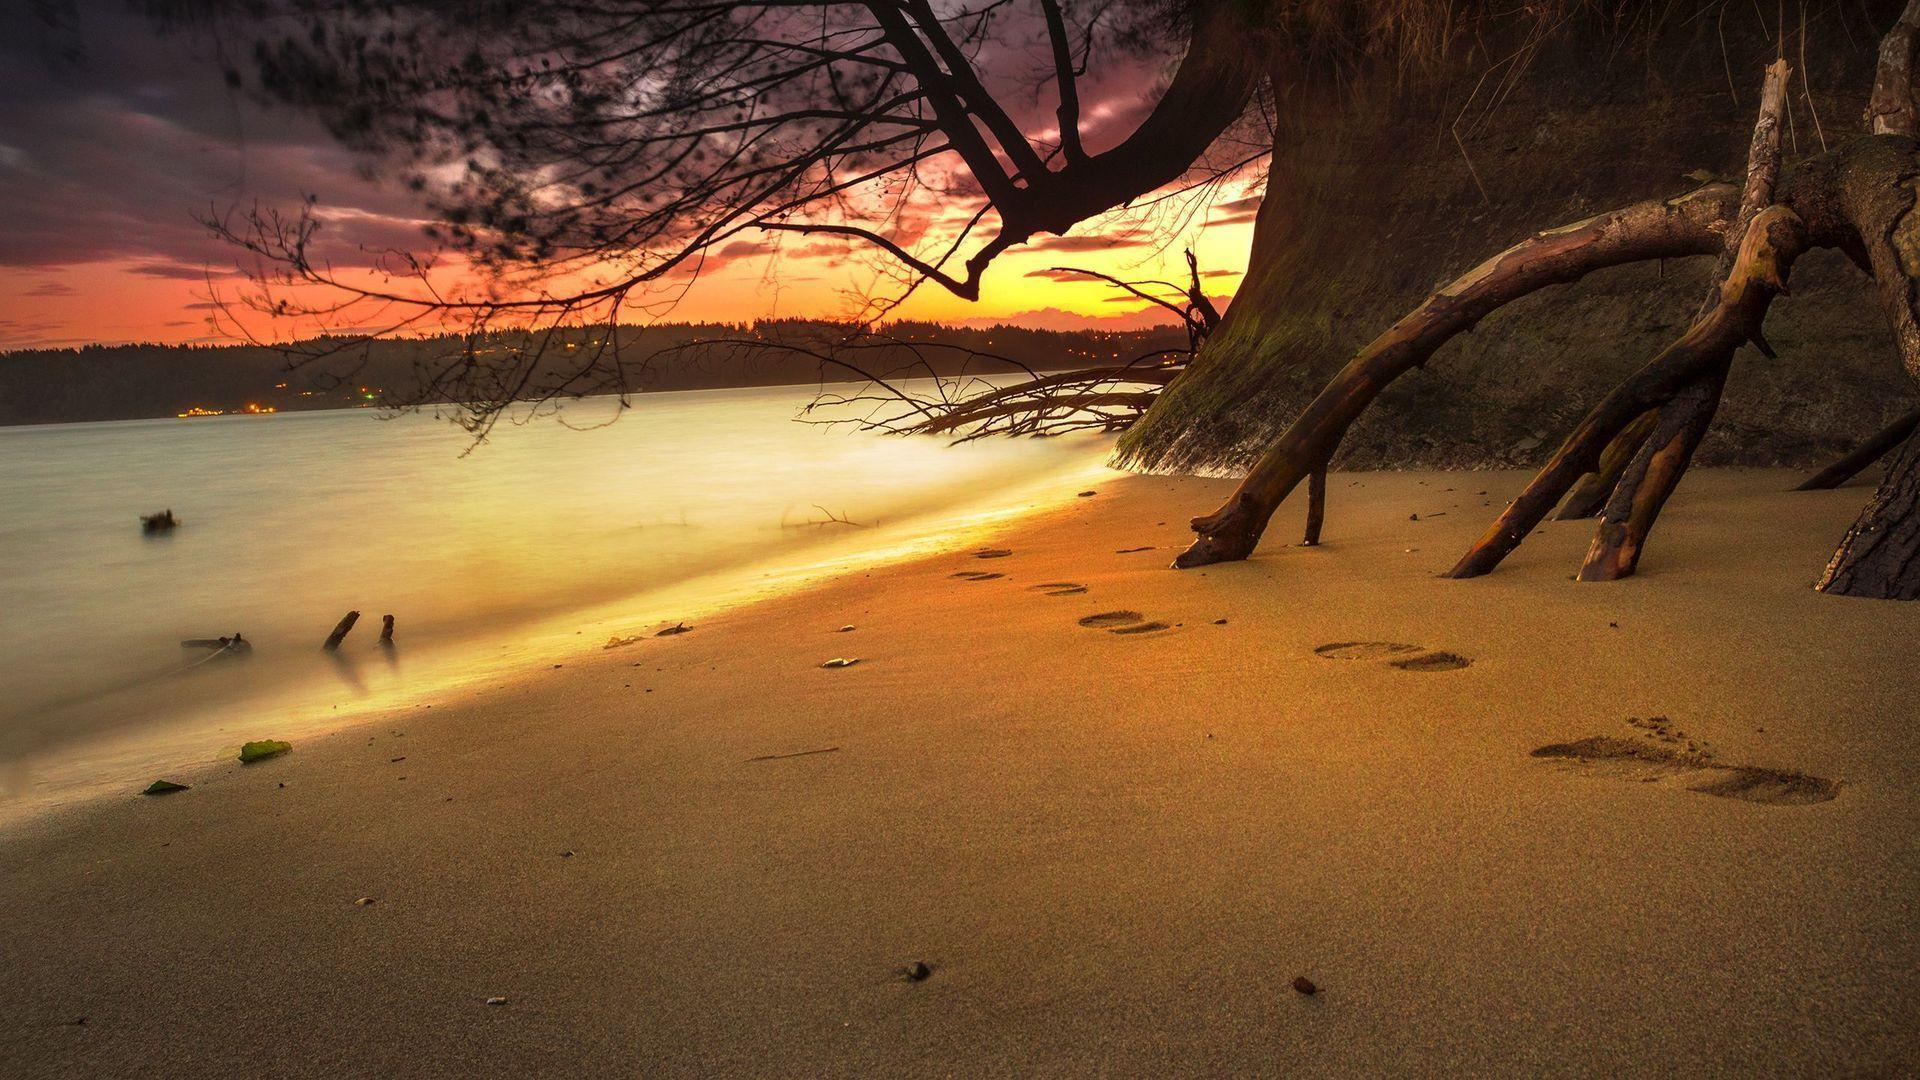 Footprints In The Sand Wallpapers - Wallpaper Cave